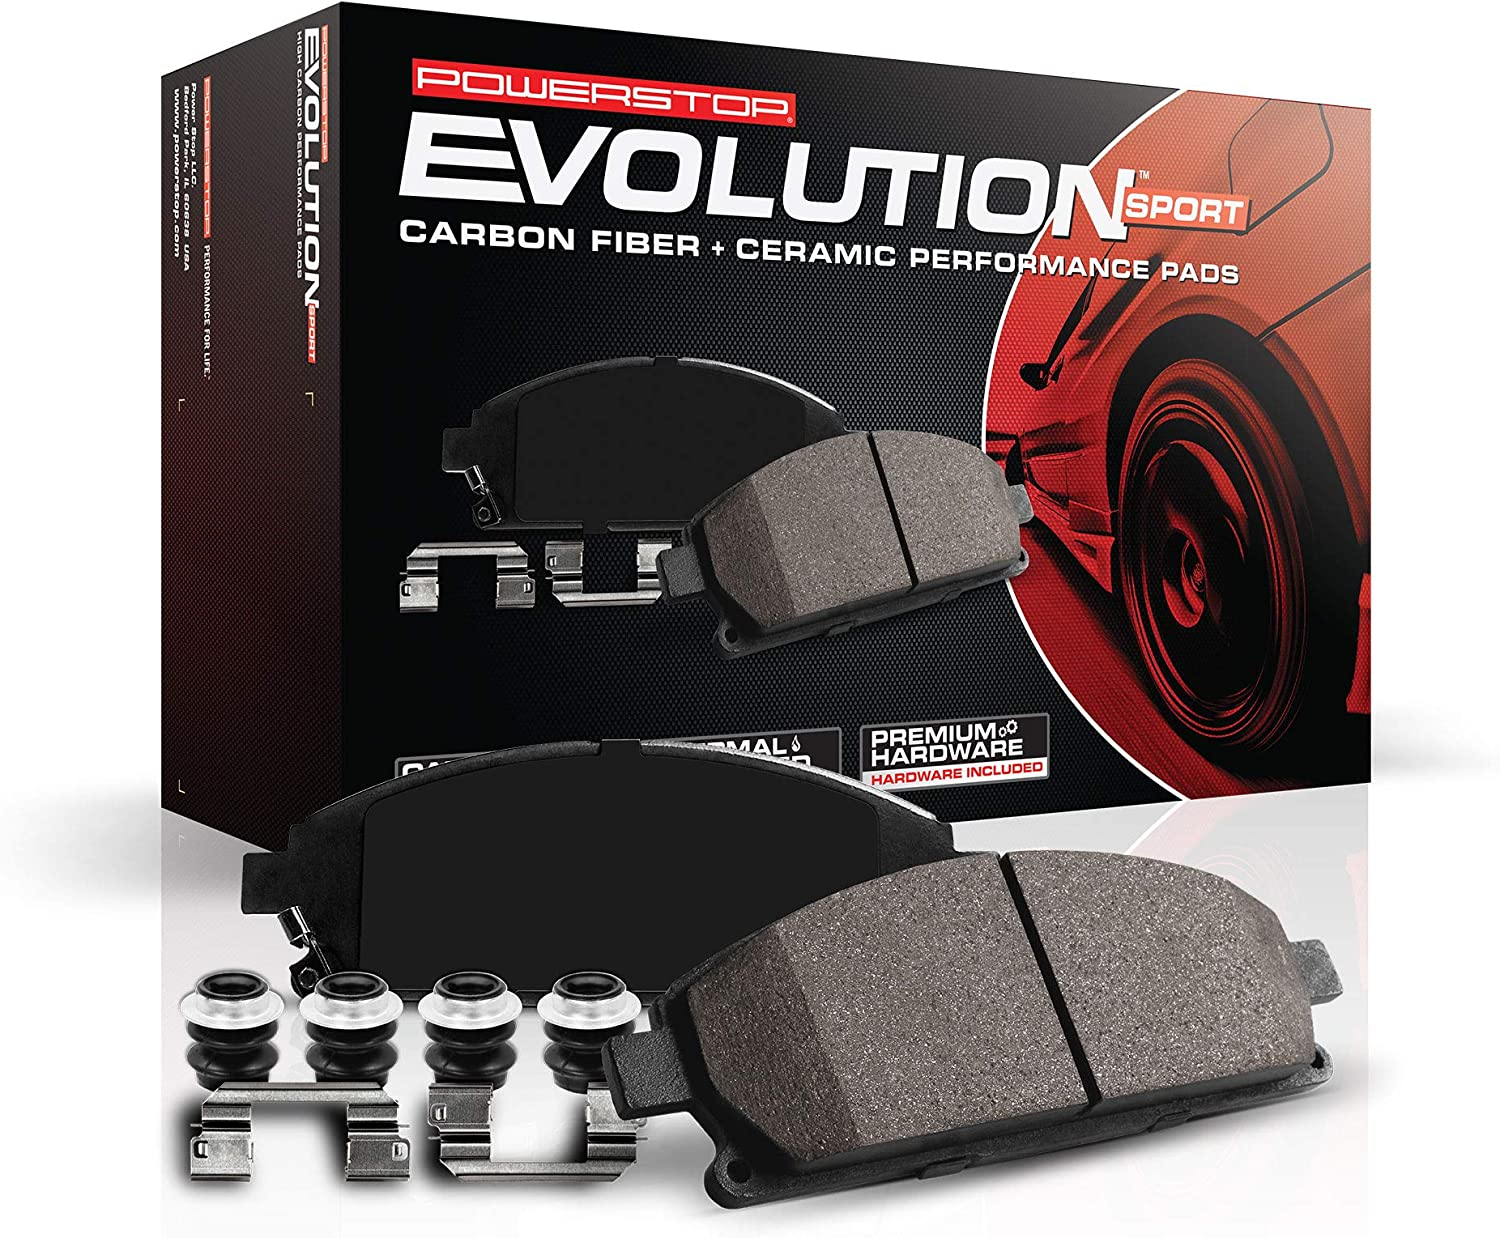 Power Stop Z23-1575 Front Z23/ Evolution/ Sport Carbon Fiber-Ceramic Brake Pads with Hardware